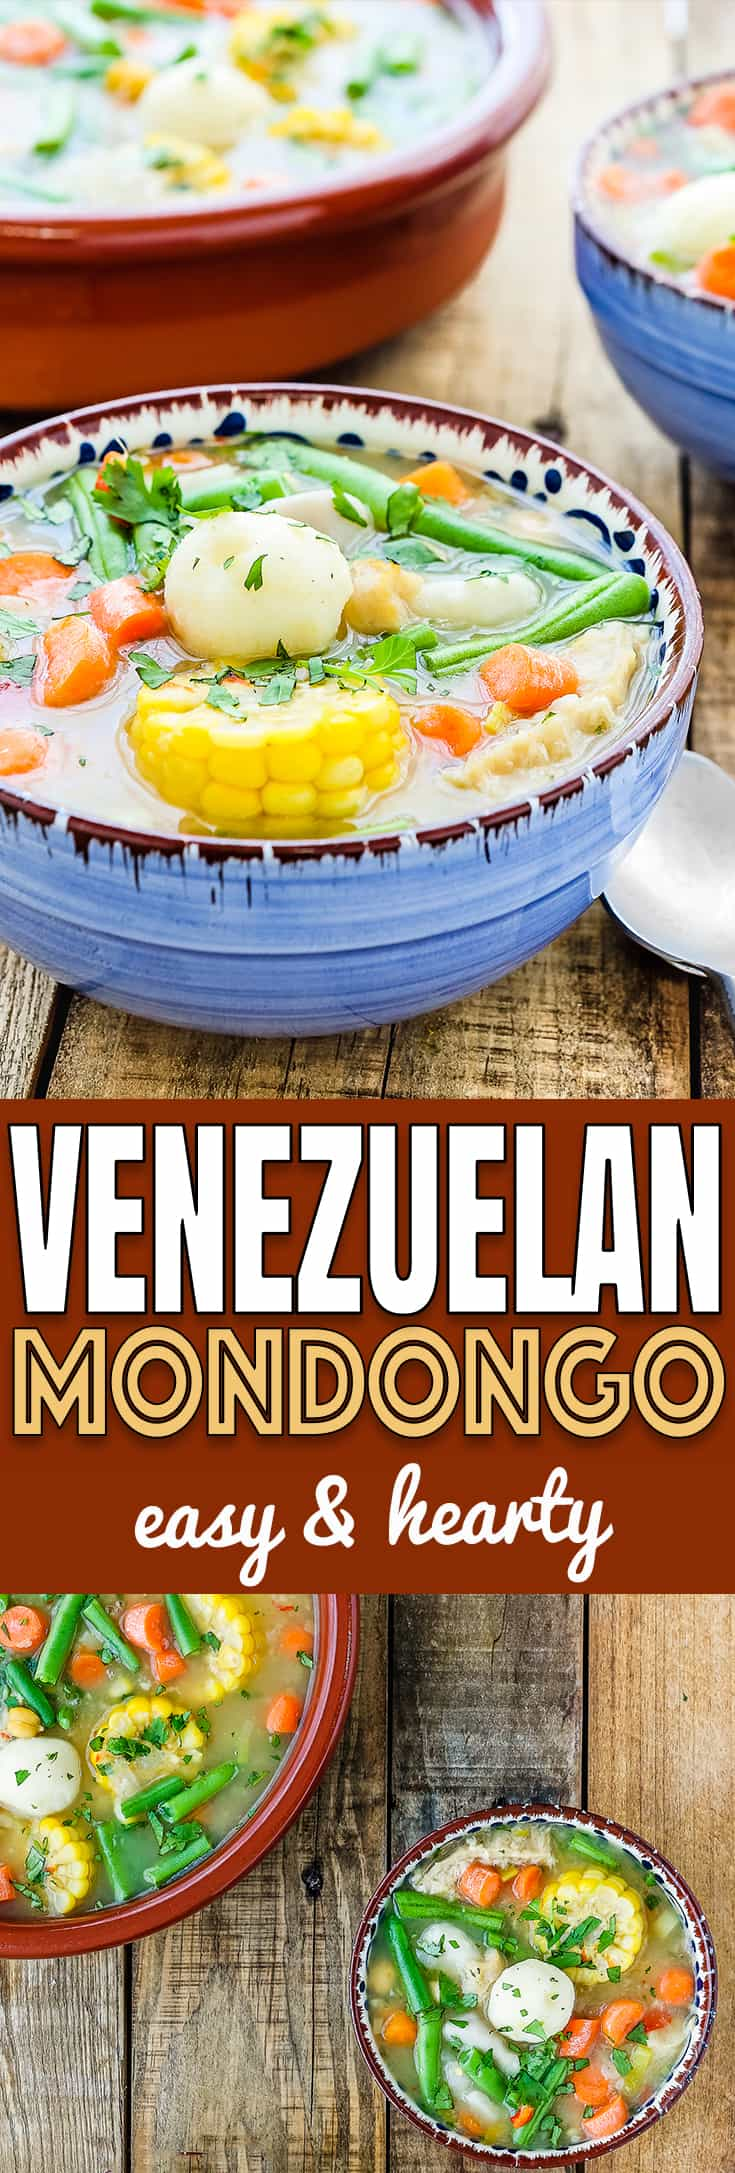 This Venezuelan Mondongo is easy to make and full of flavor. Made with beef tripe (panza), pork's feet (paticas de cochino) and lots of vegetables, this tripe stew will be a pleasant surprise for your palate. Be adventurous and give it a try! https://mommyshomecooking.comThis Venezuelan Mondongo is easy to make and full of flavor. Made with beef tripe (panza), pork's feet (paticas de cochino) and lots of vegetables, this tripe stew will be a pleasant surprise for your palate. Be adventurous and give it a try! https://mommyshomecooking.com